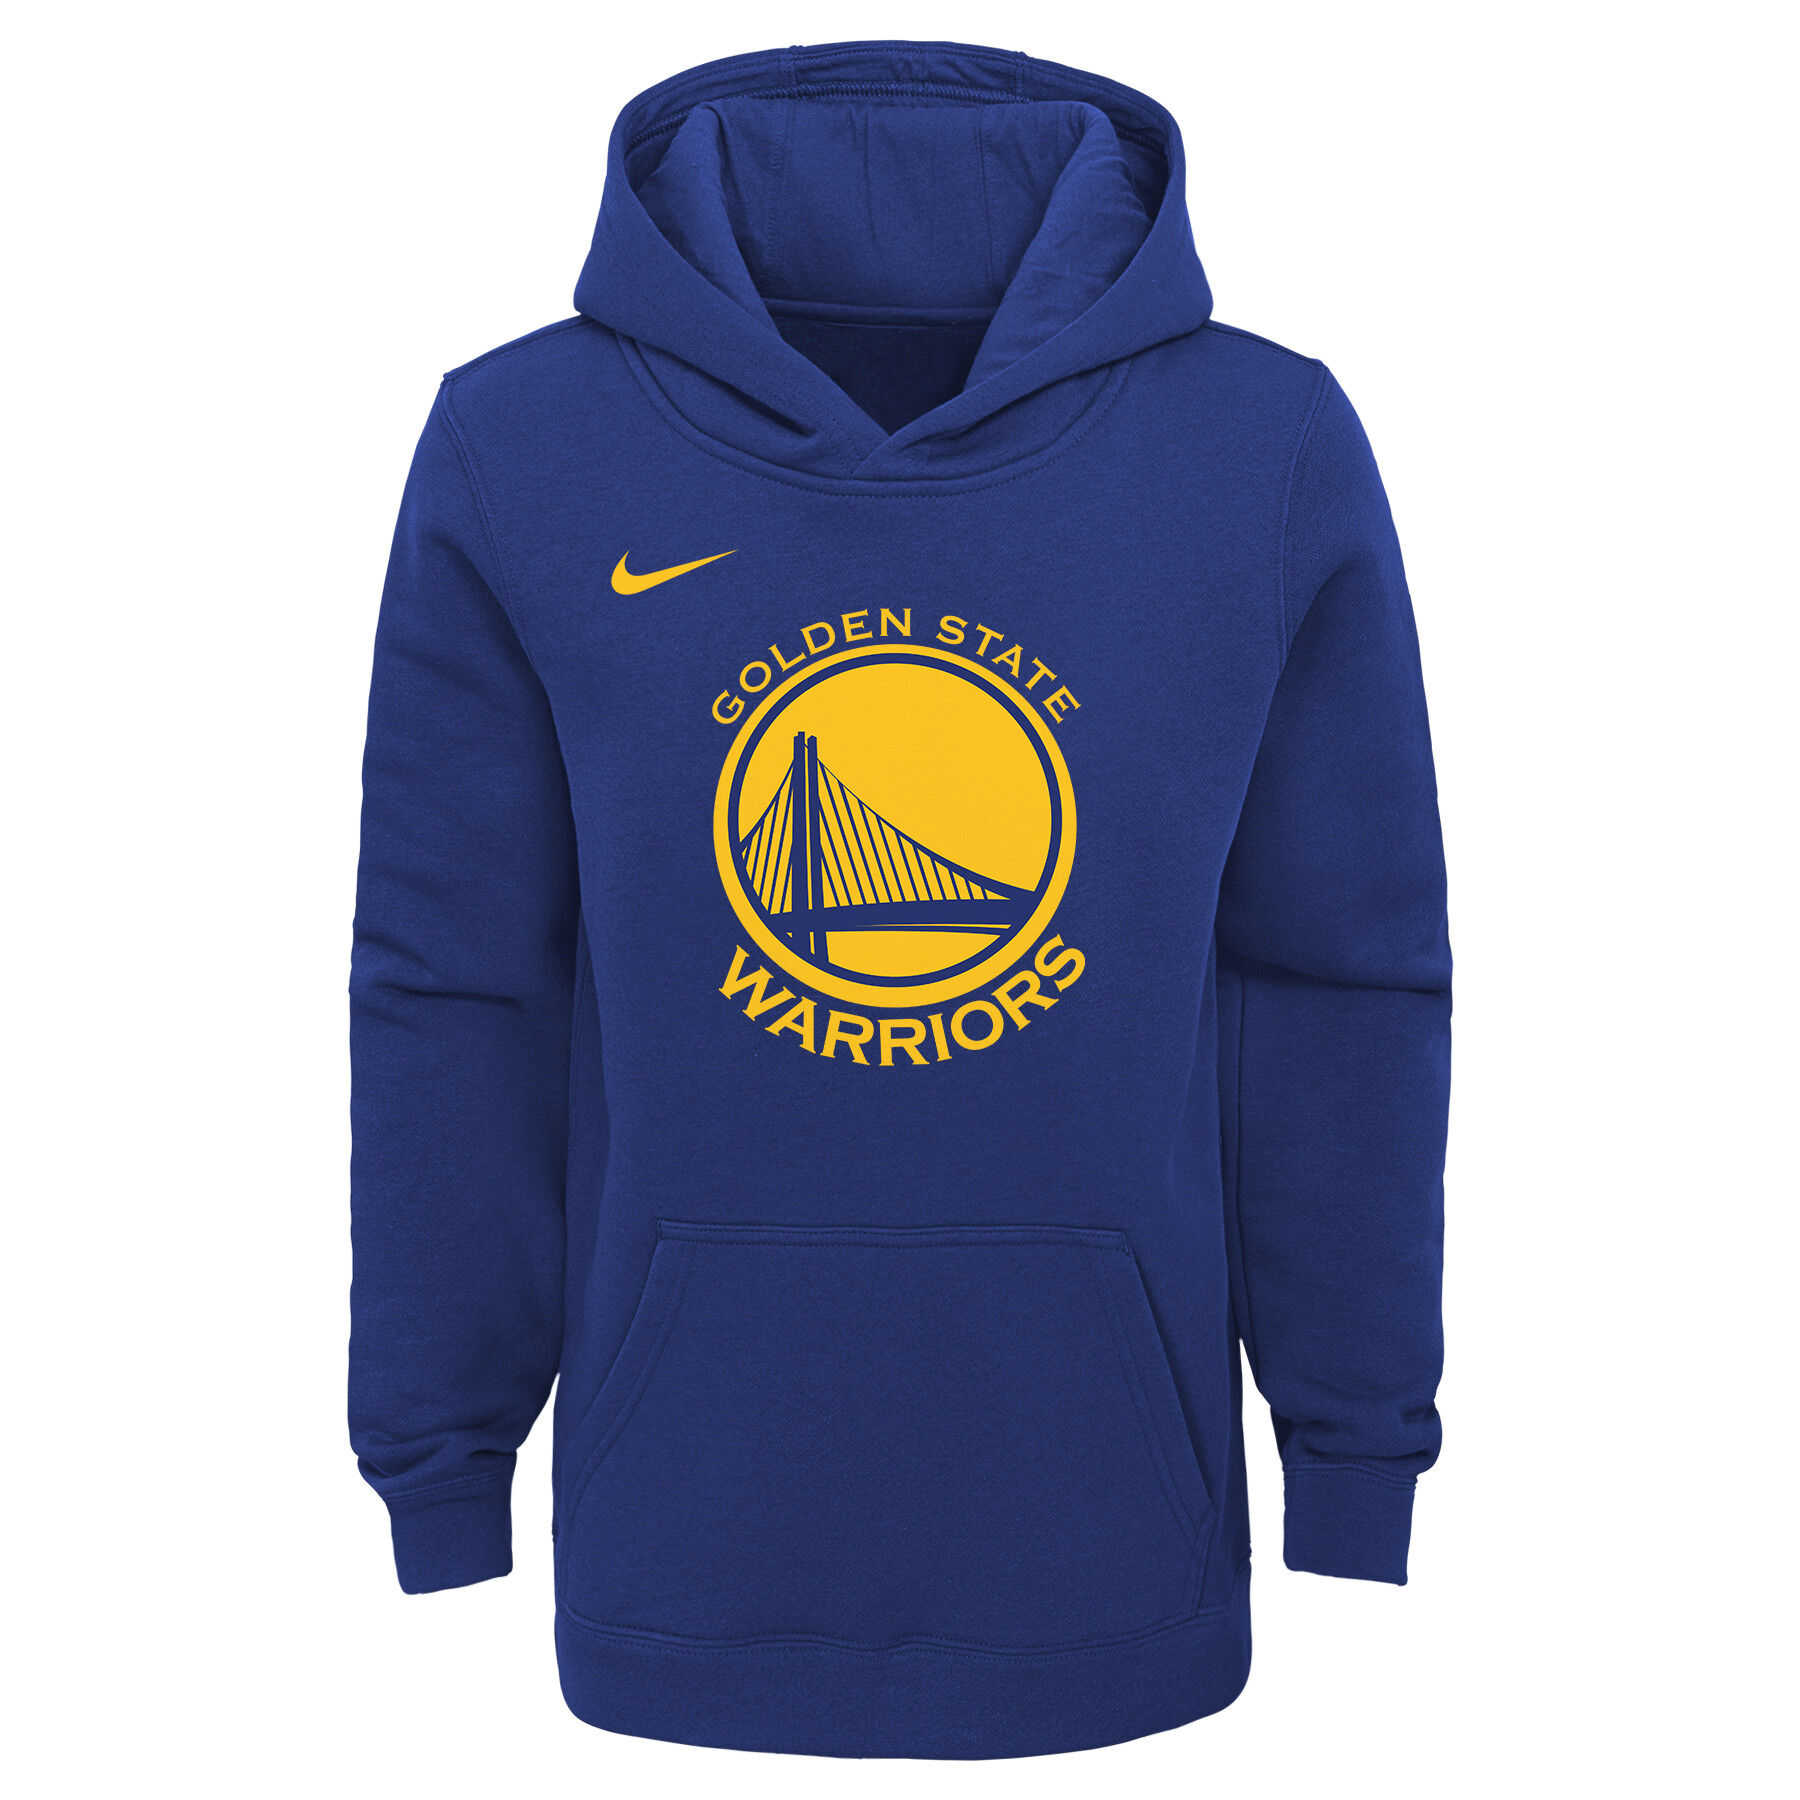 Activewear Clothing, Shoes & Accessories Objective Nwt Nike Los Angeles Lakers Mens Pullover Fleece Hoodie Sweatshirt Sz Med Yellow